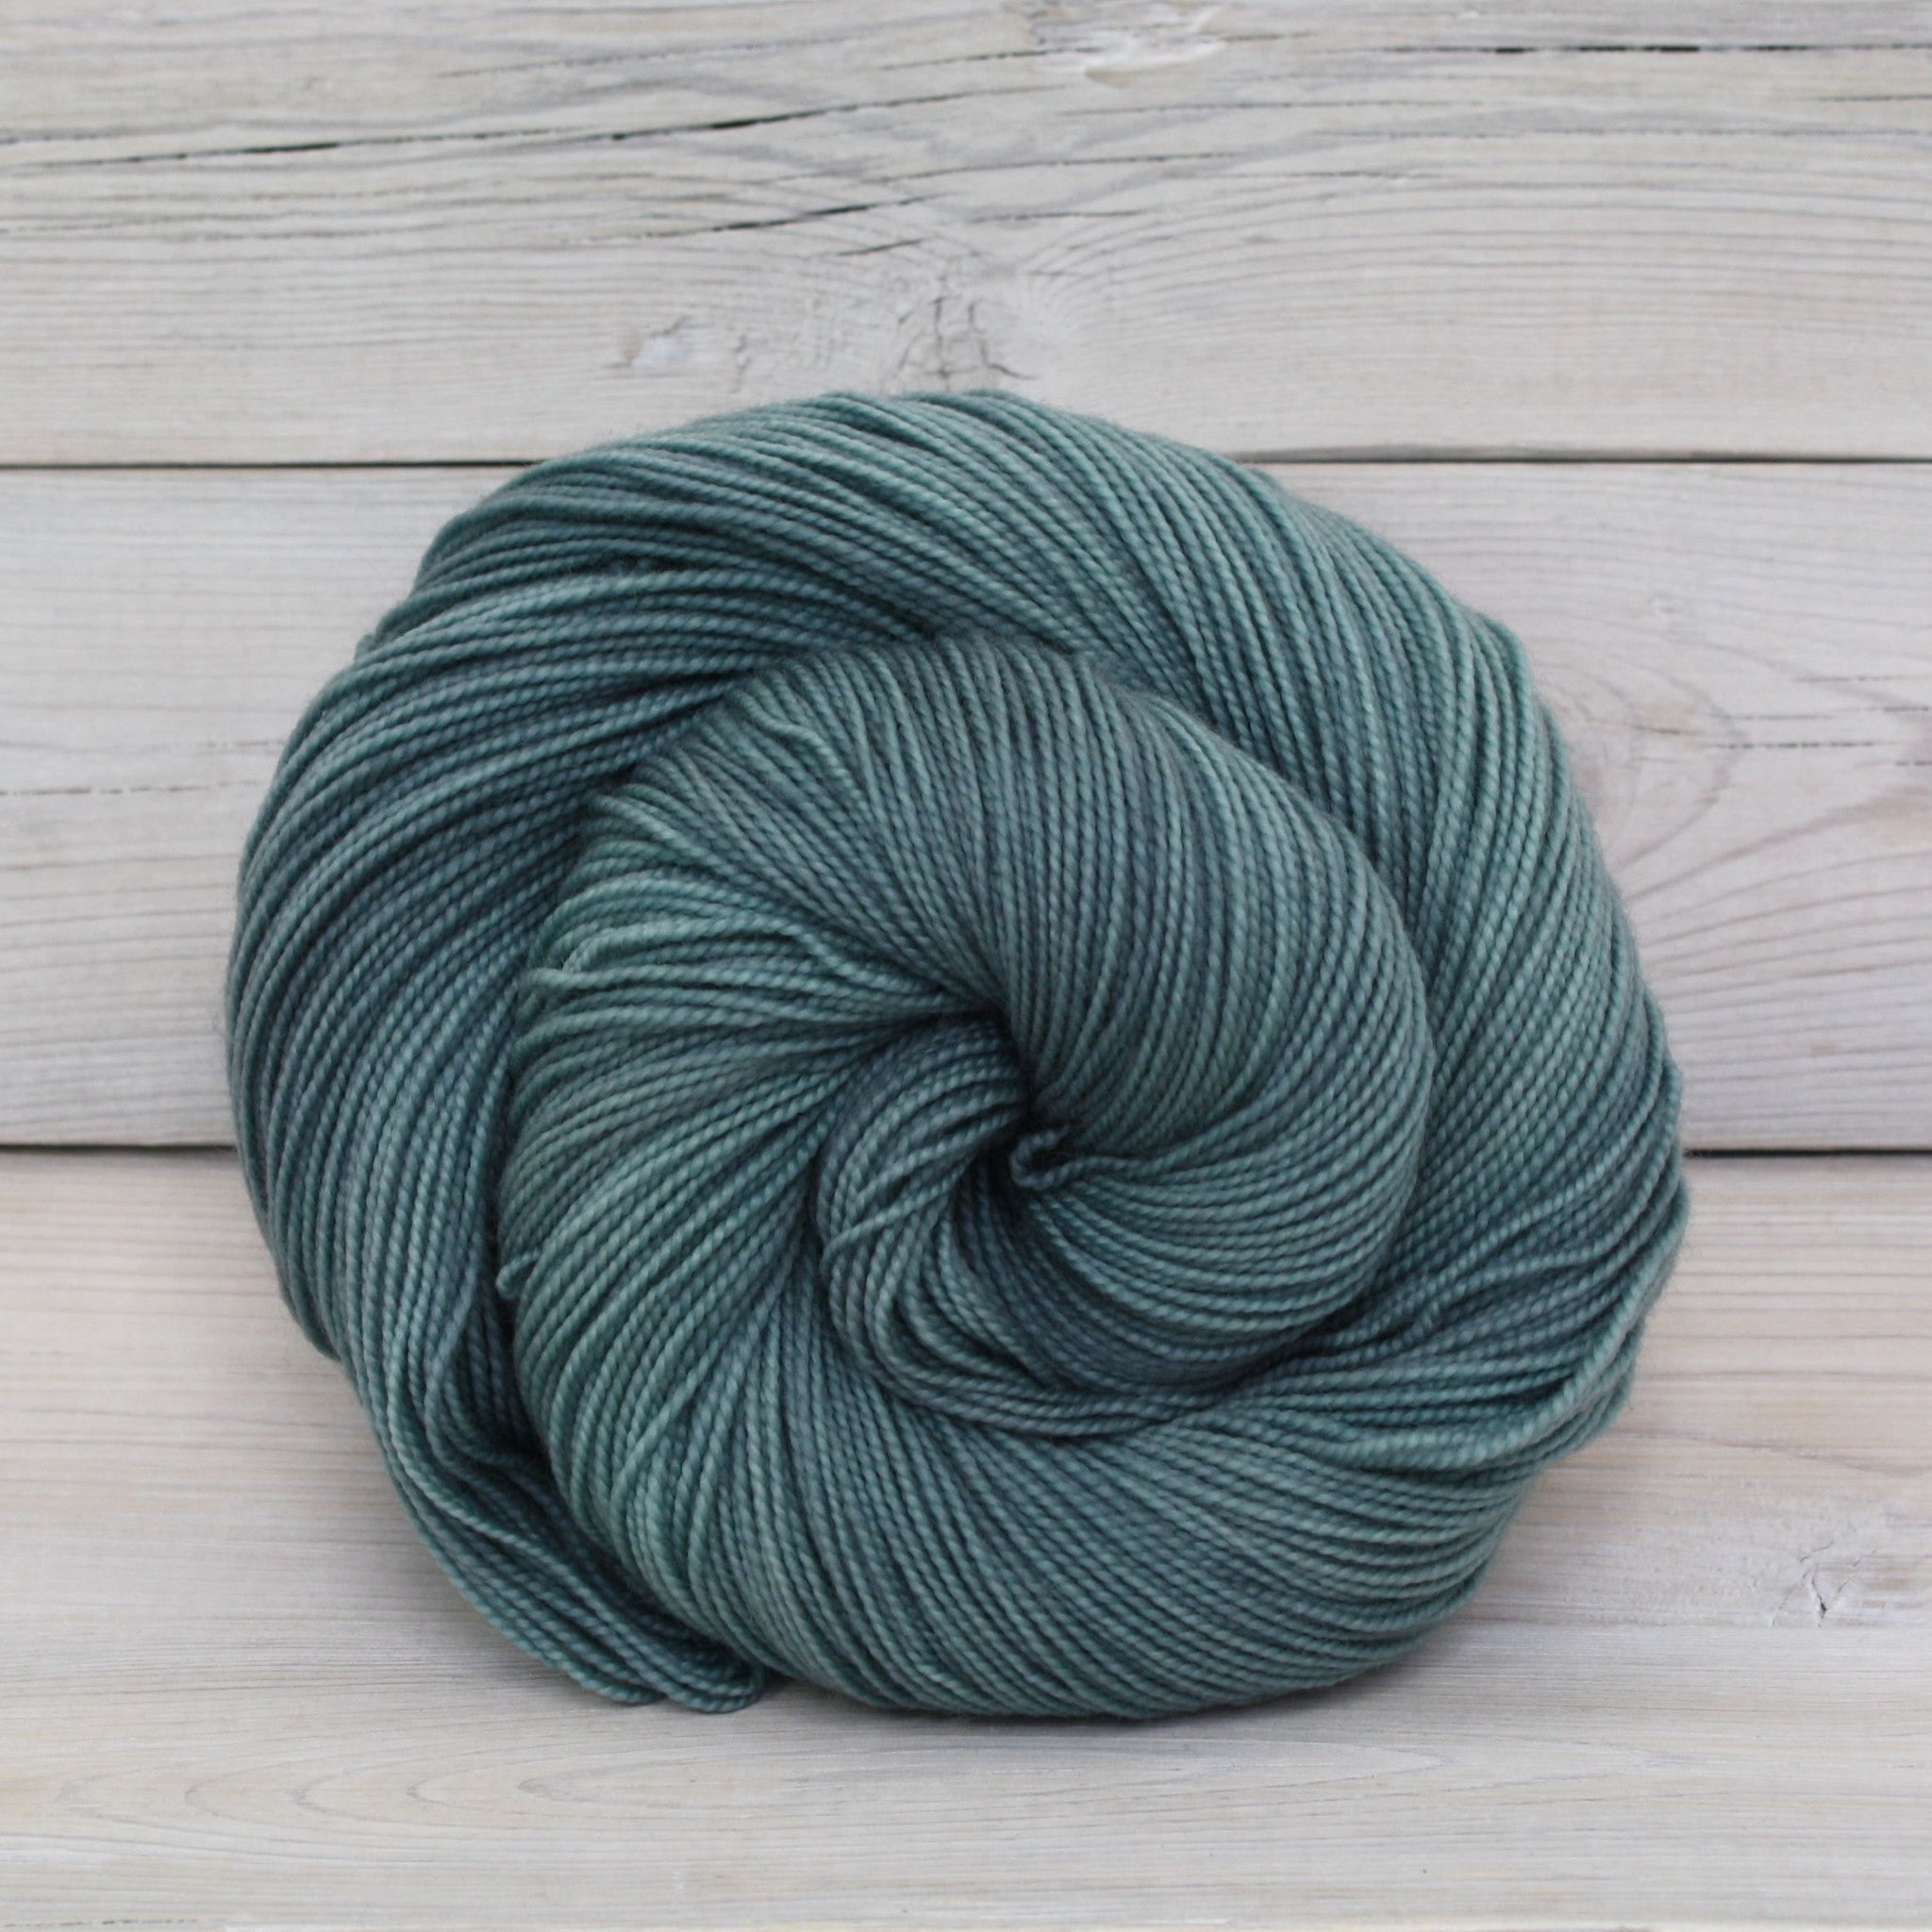 Luna Grey Fiber Arts Celeste Yarn | Colorway: Harbor